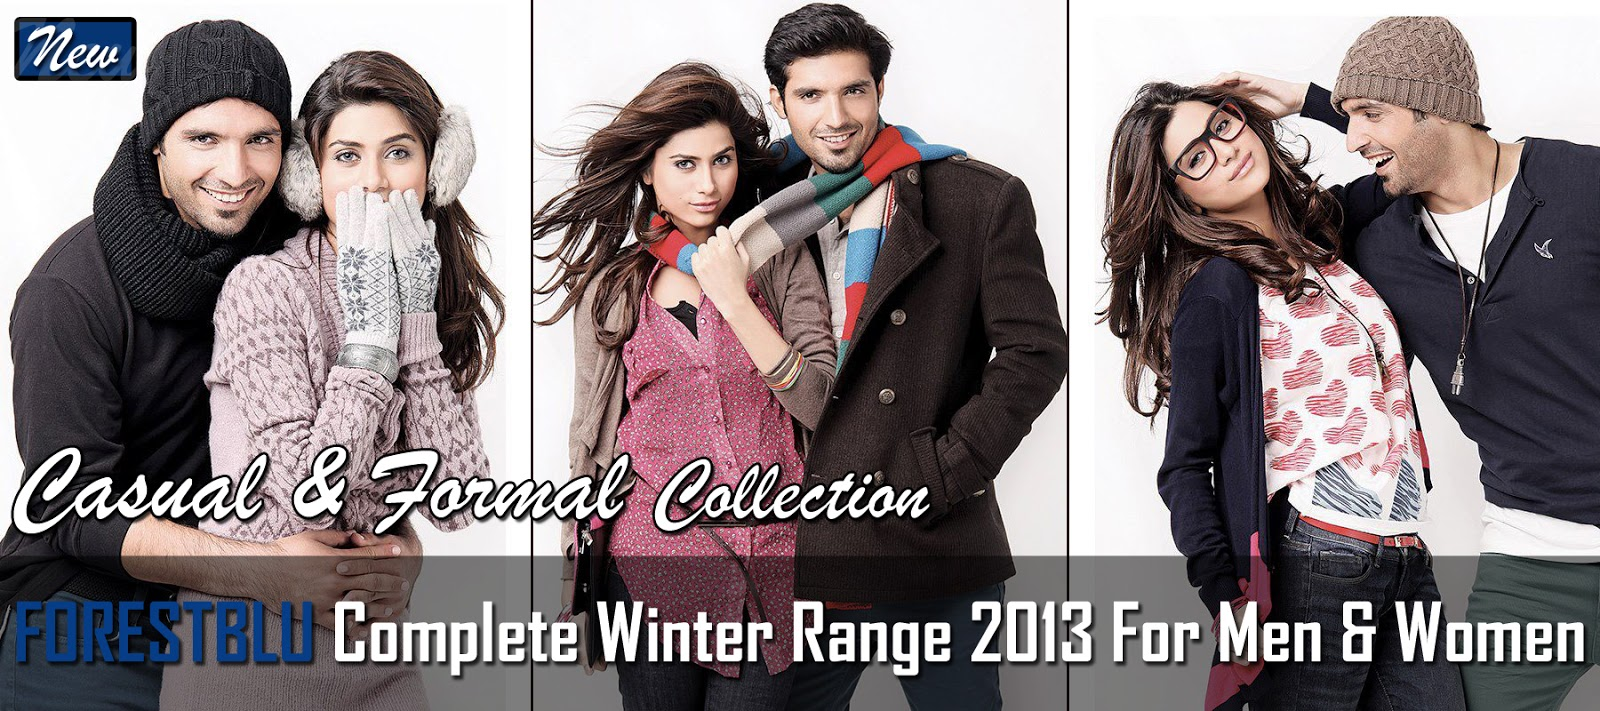 77386294ee Forestblu is new and emerging clothing brand launched in 2012. it is grown  quite fast in fashion industry of Pakistan. It has introduced always  charming and ...